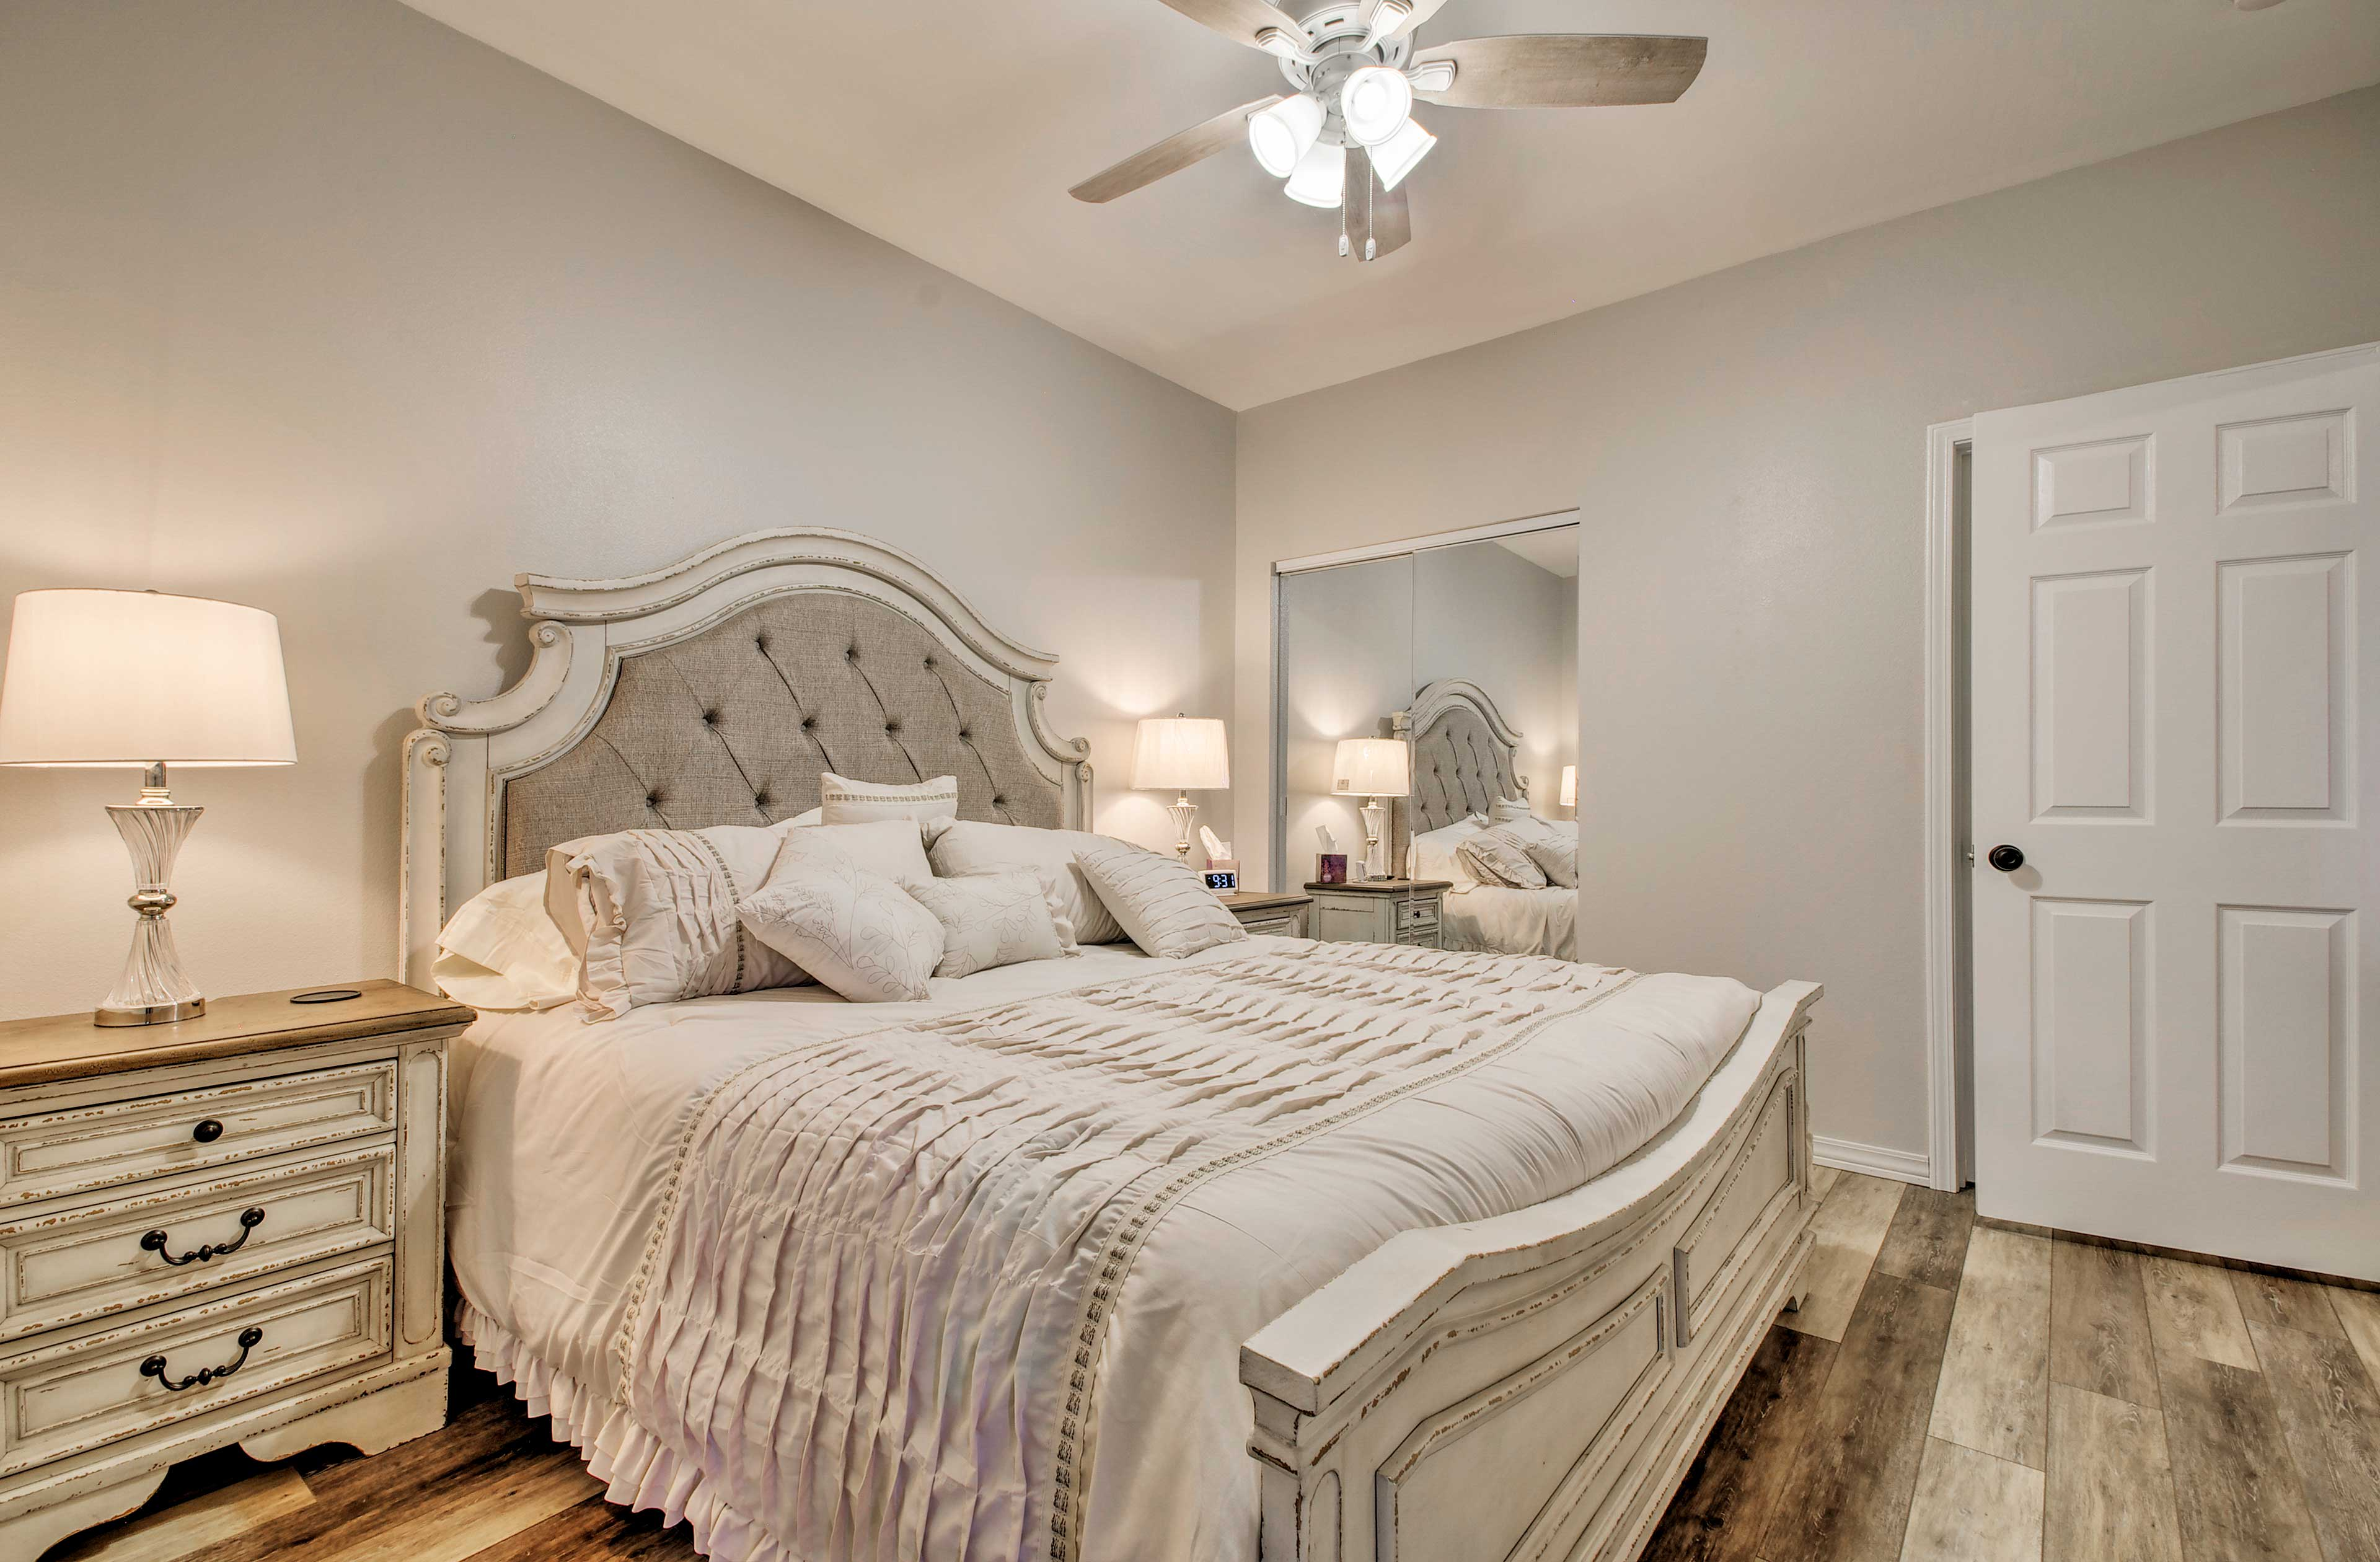 Wake up rested in this comfy bed.